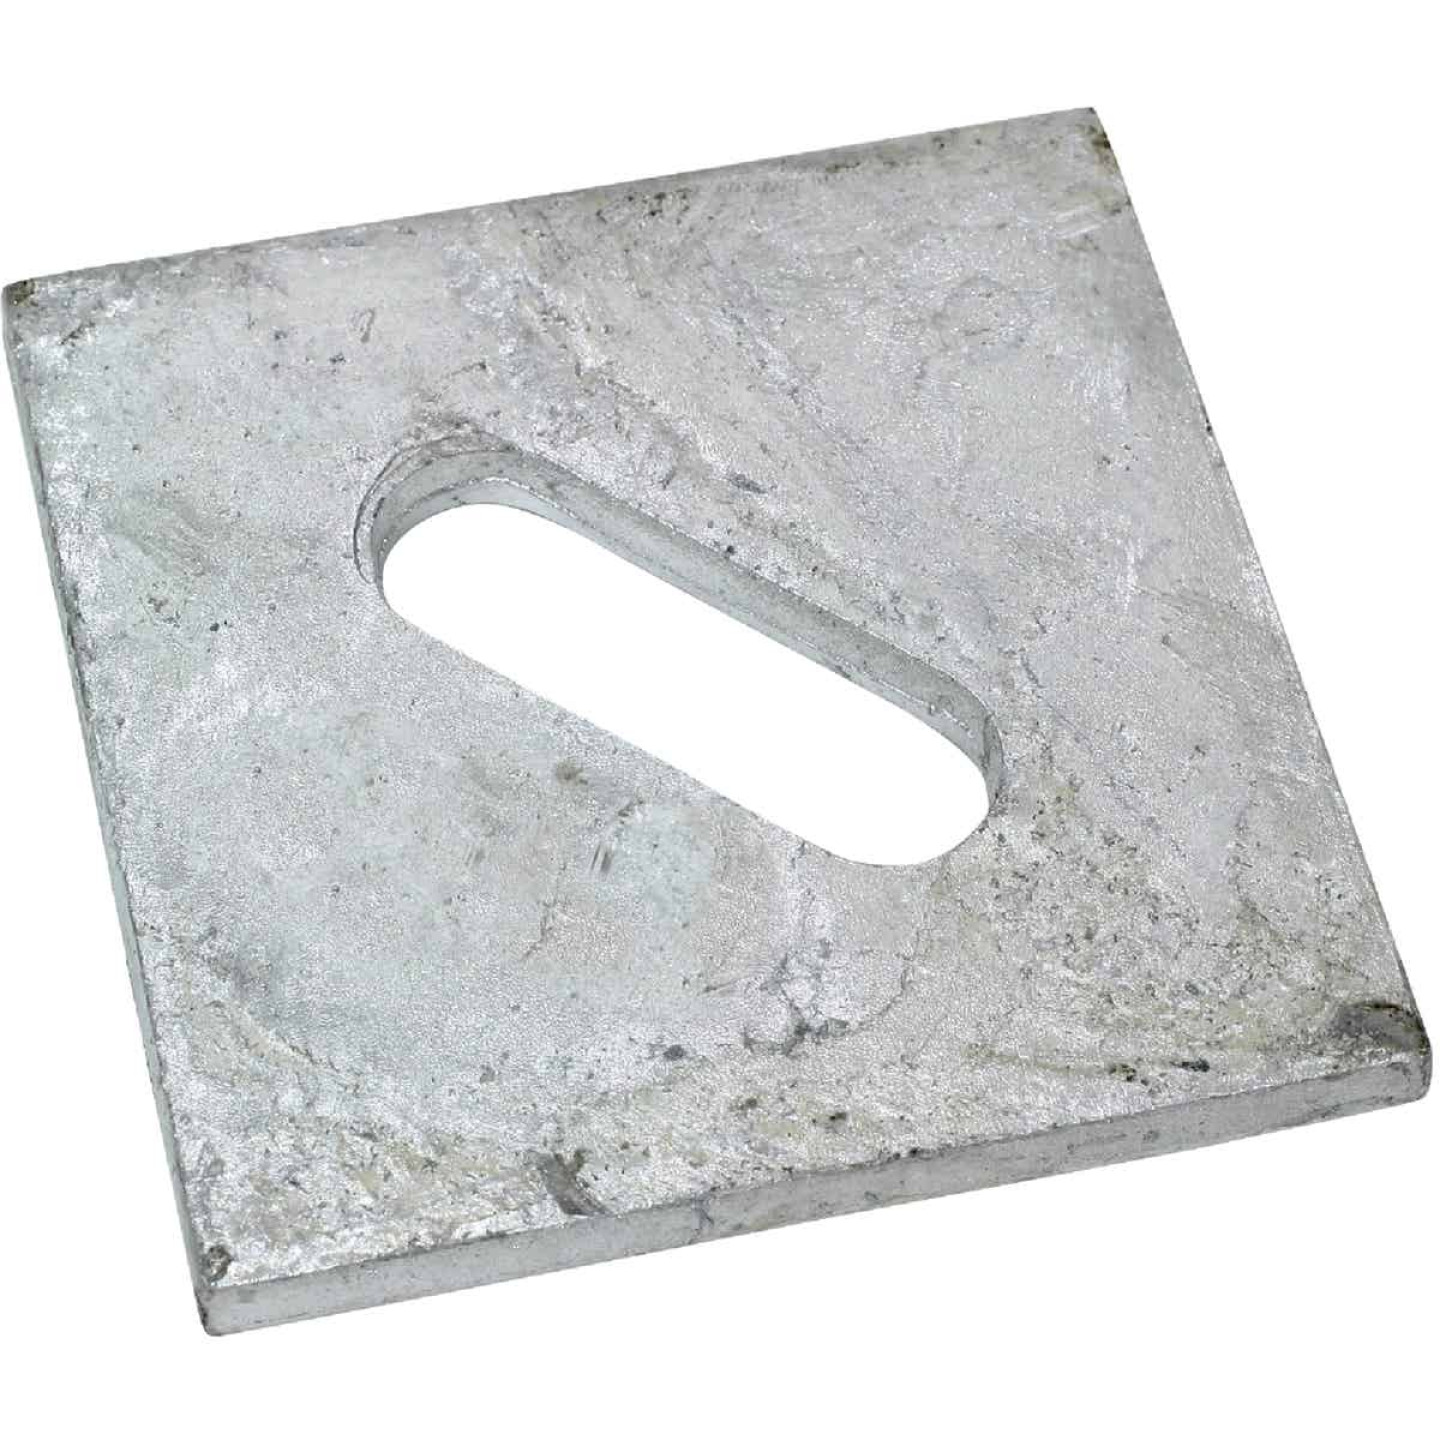 Simpson Strong-Tie 1/2 in. x 3 in. Steel Hot Dipped Galvanized Slotted Bearing Plate Image 1